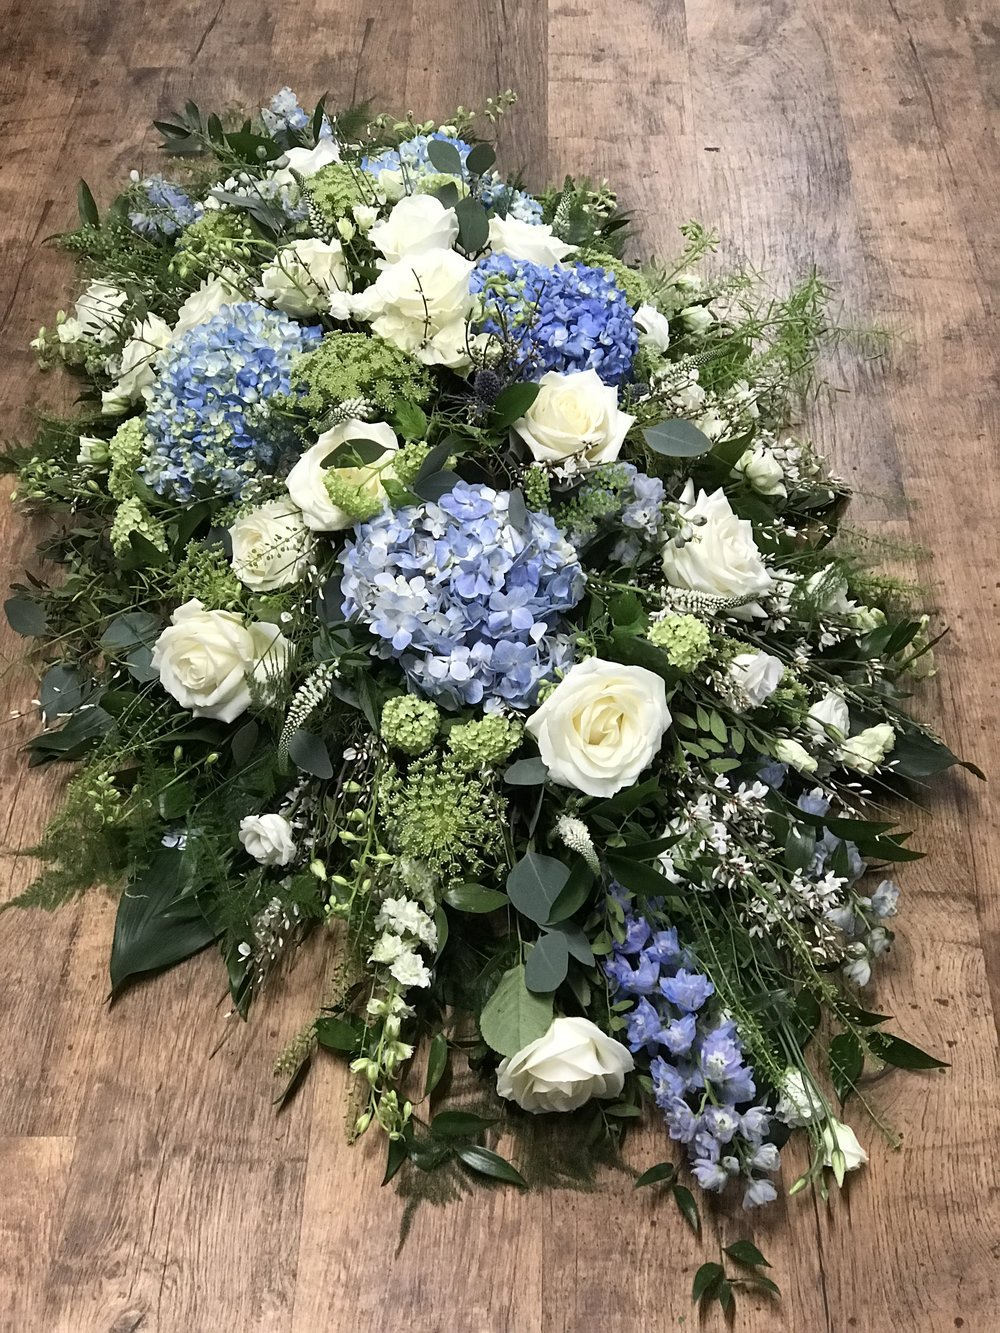 Country Garden Coffin Spray in ivory and blue